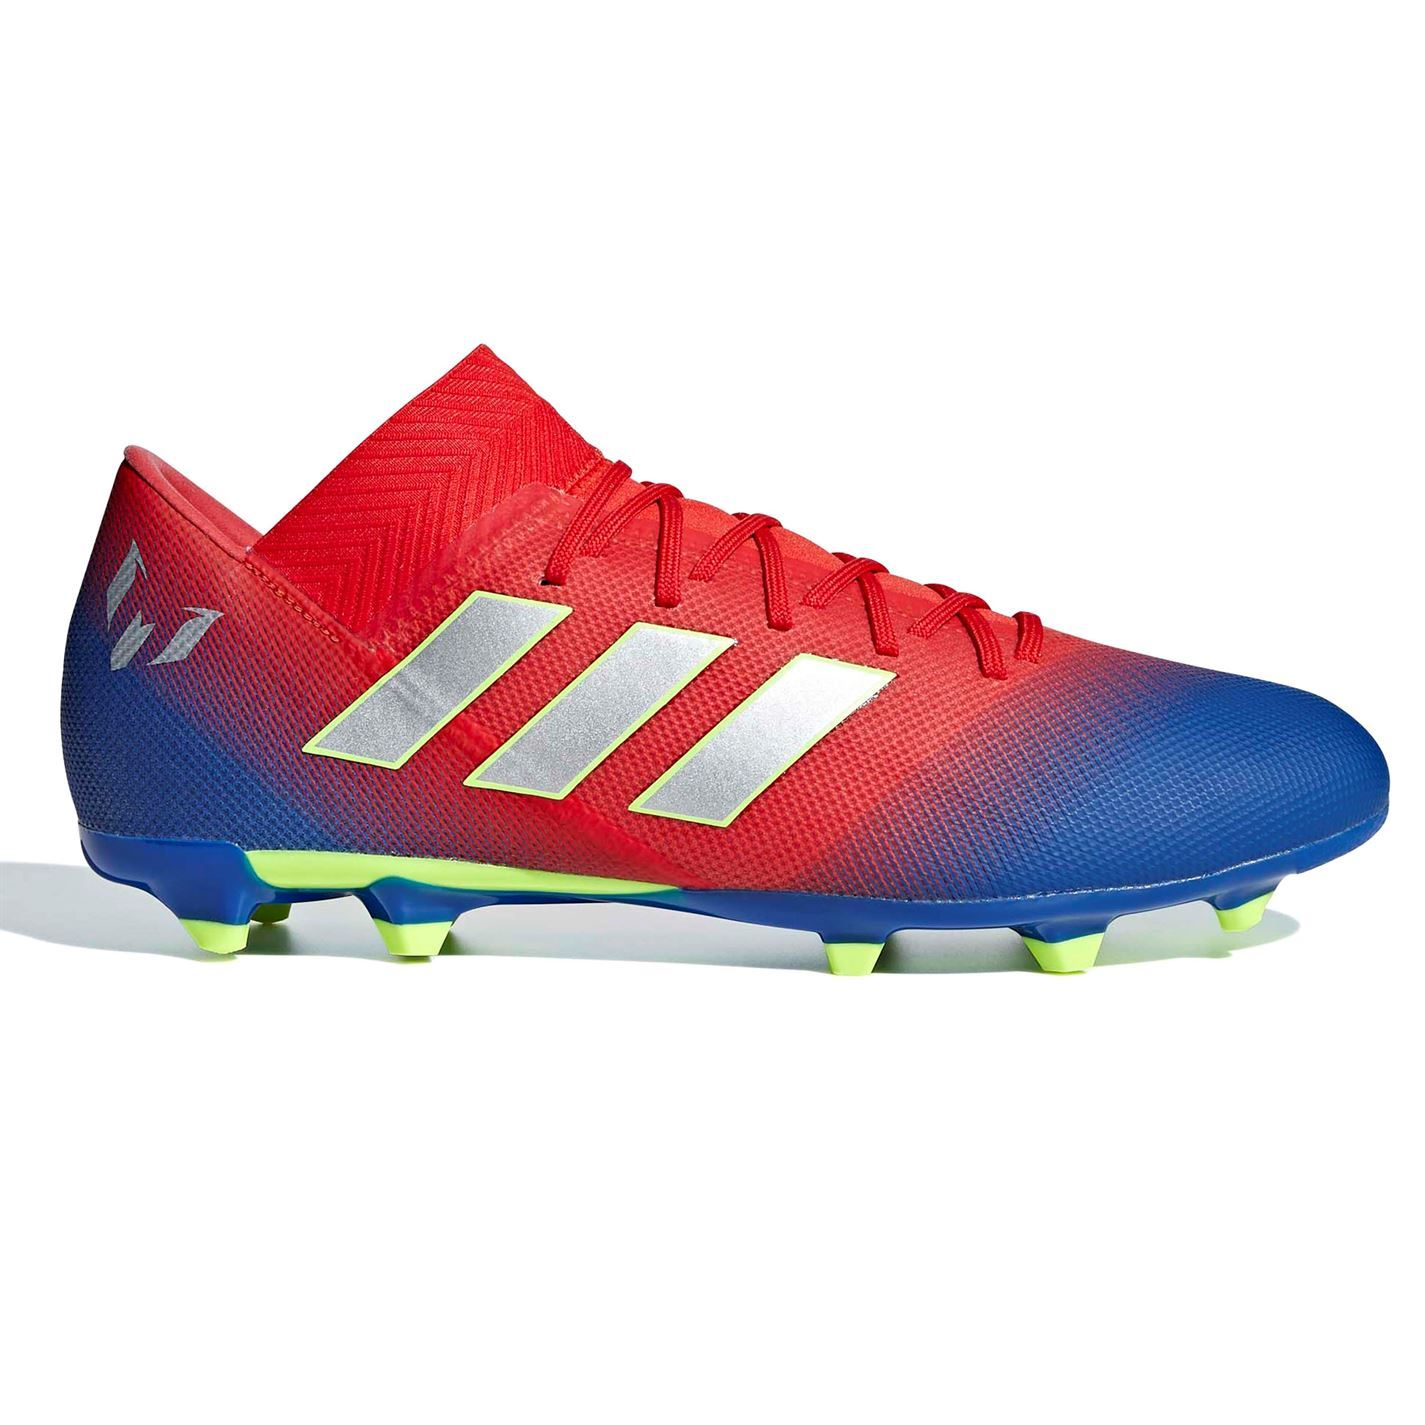 adidas football shoes messi